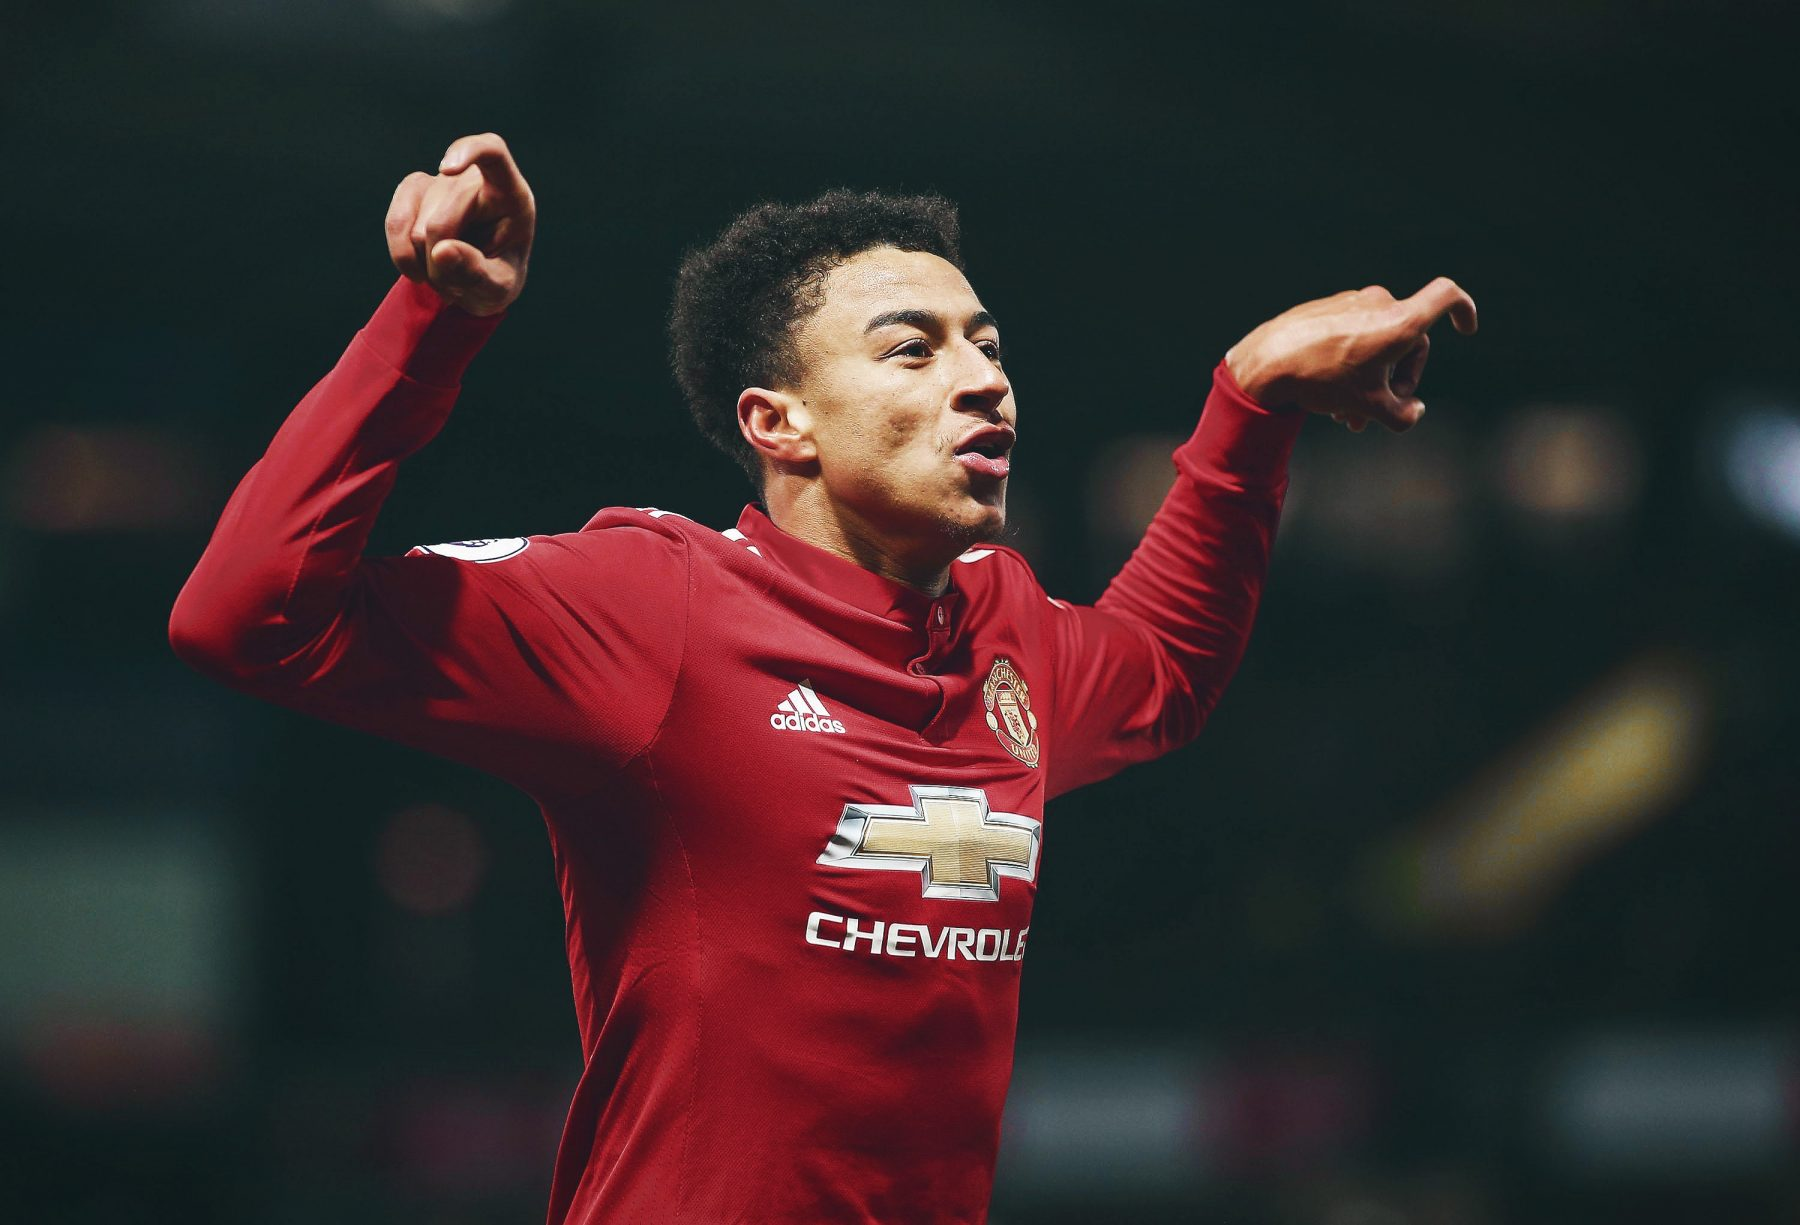 Jesse Lingard  the unlikely rise to stardom of a divisive but     TO SEE AN academy graduate make the step up from the youth ranks to the  first team is always a source of pride for fans  That feeling is sweeter  when the